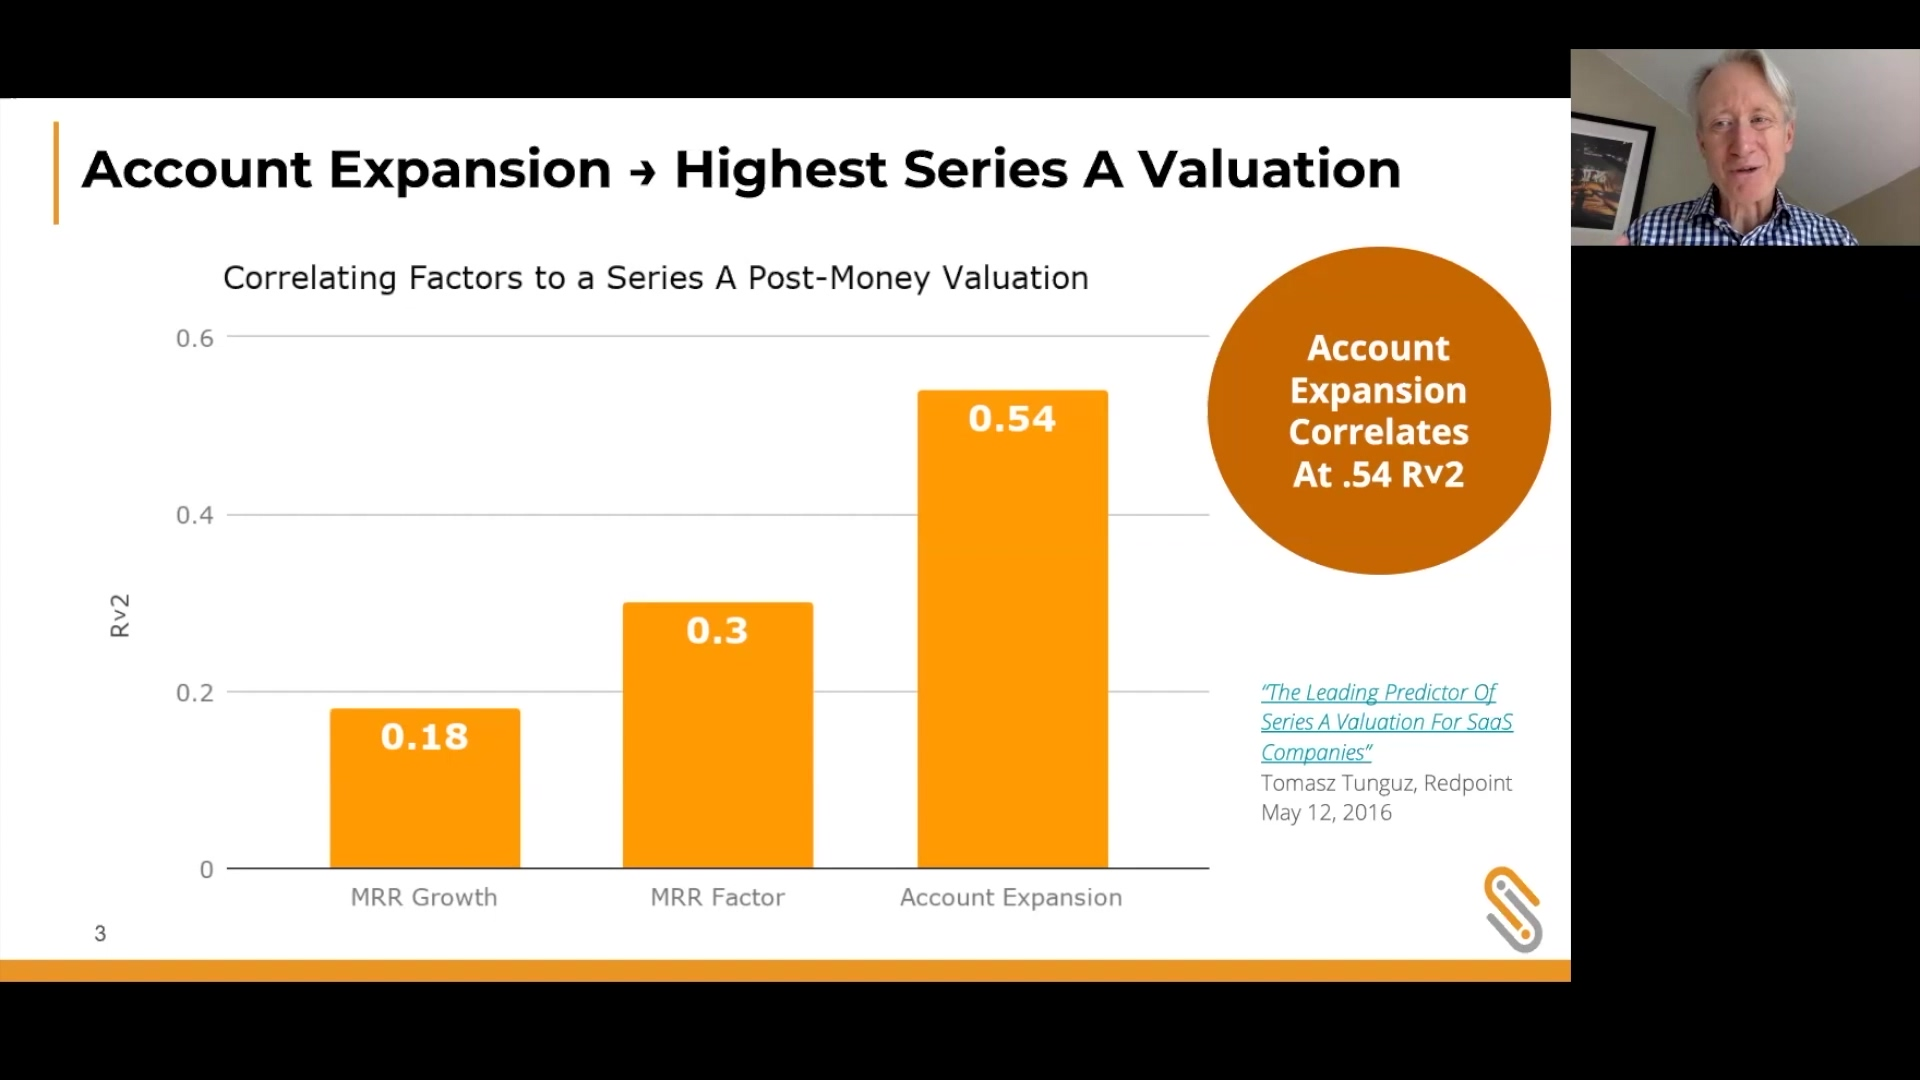 Carema Consulting Webinar- Account Expansions Impact on Investment Valuations